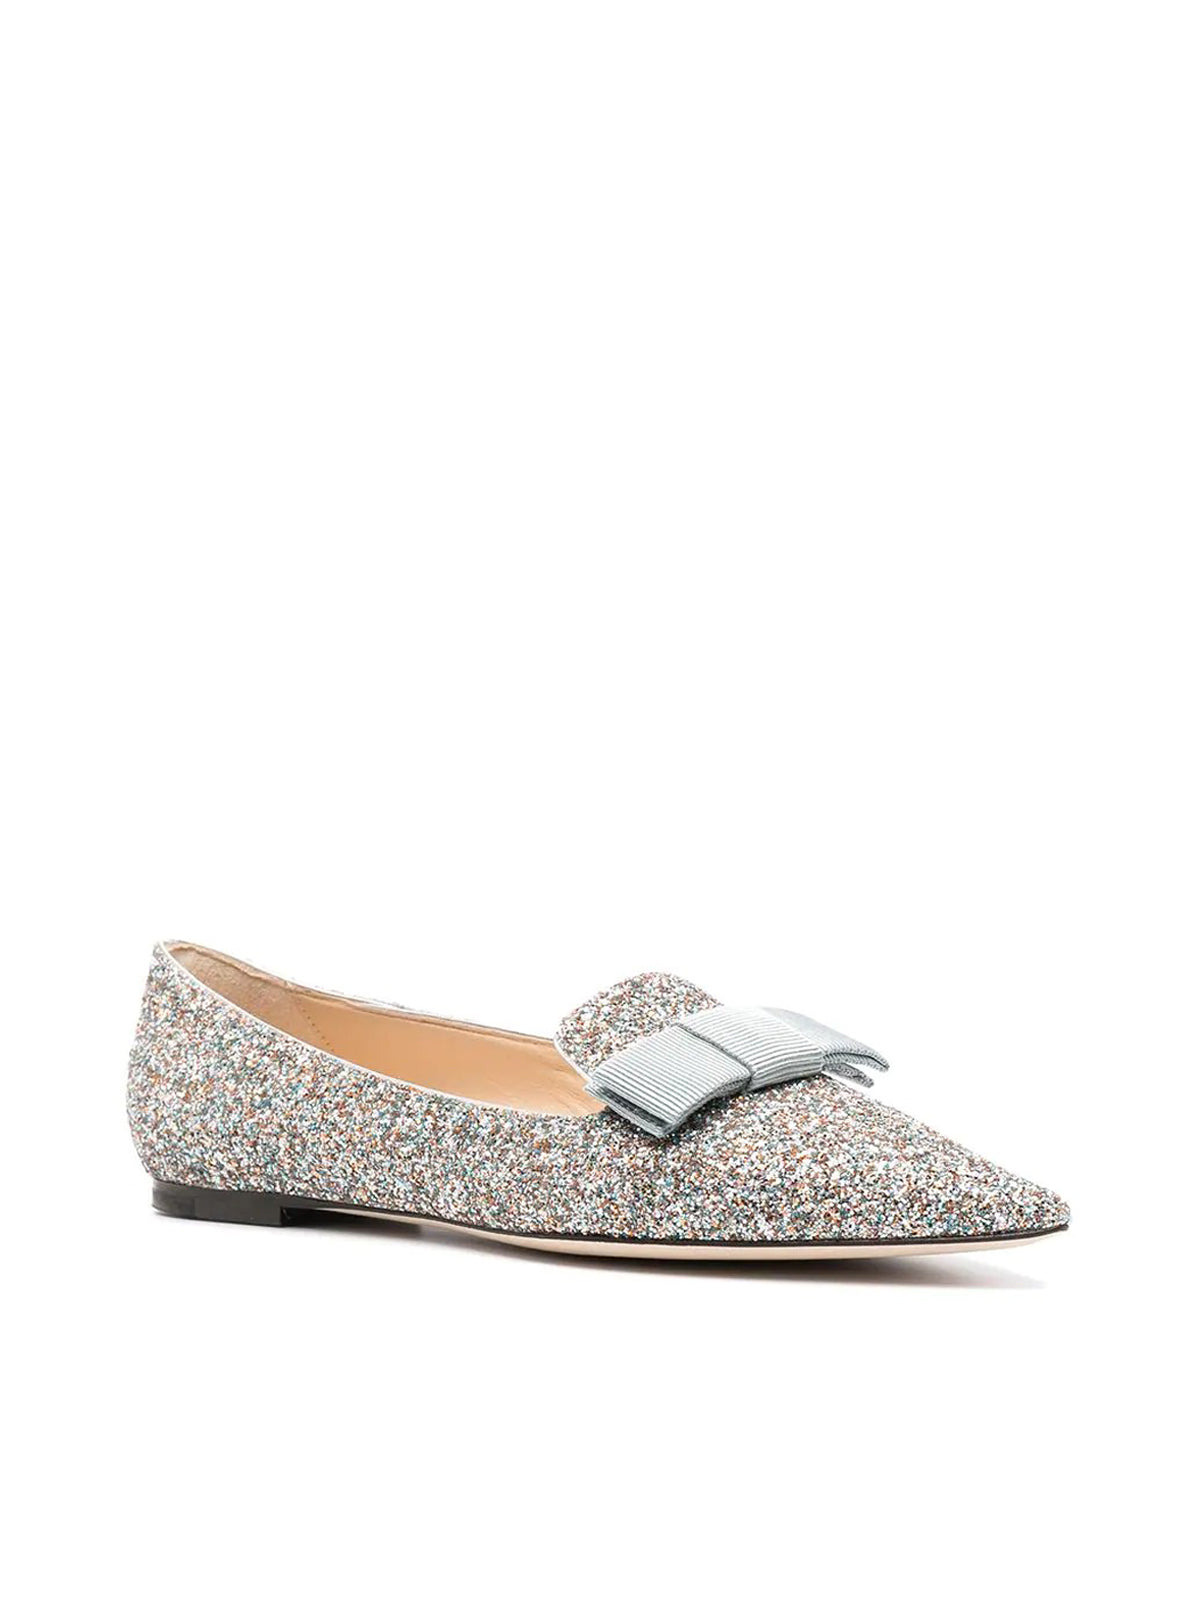 bow-detail glitter-effect ballerina shoes